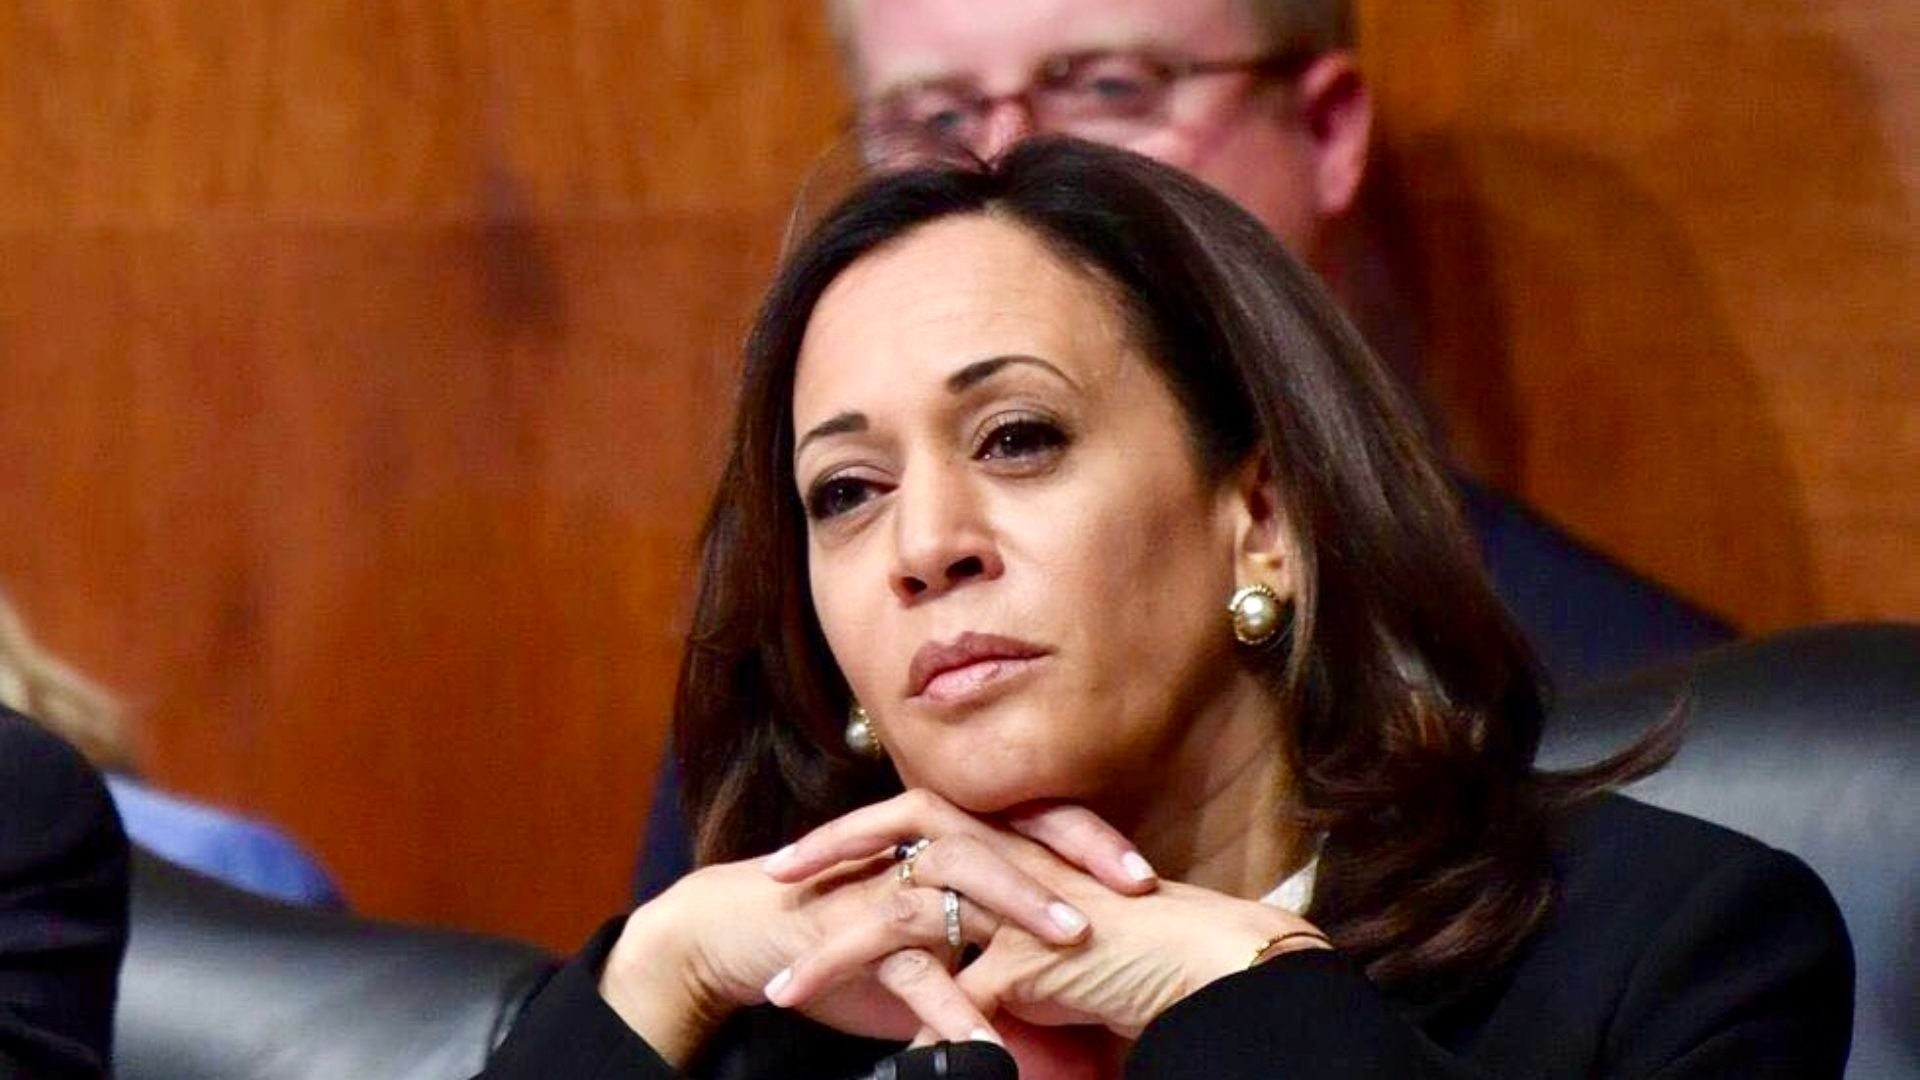 Kamala Harris Seemingly Caught AG William Barr In A Lie, Now She's Calling On Him To Testify Before Congress Again